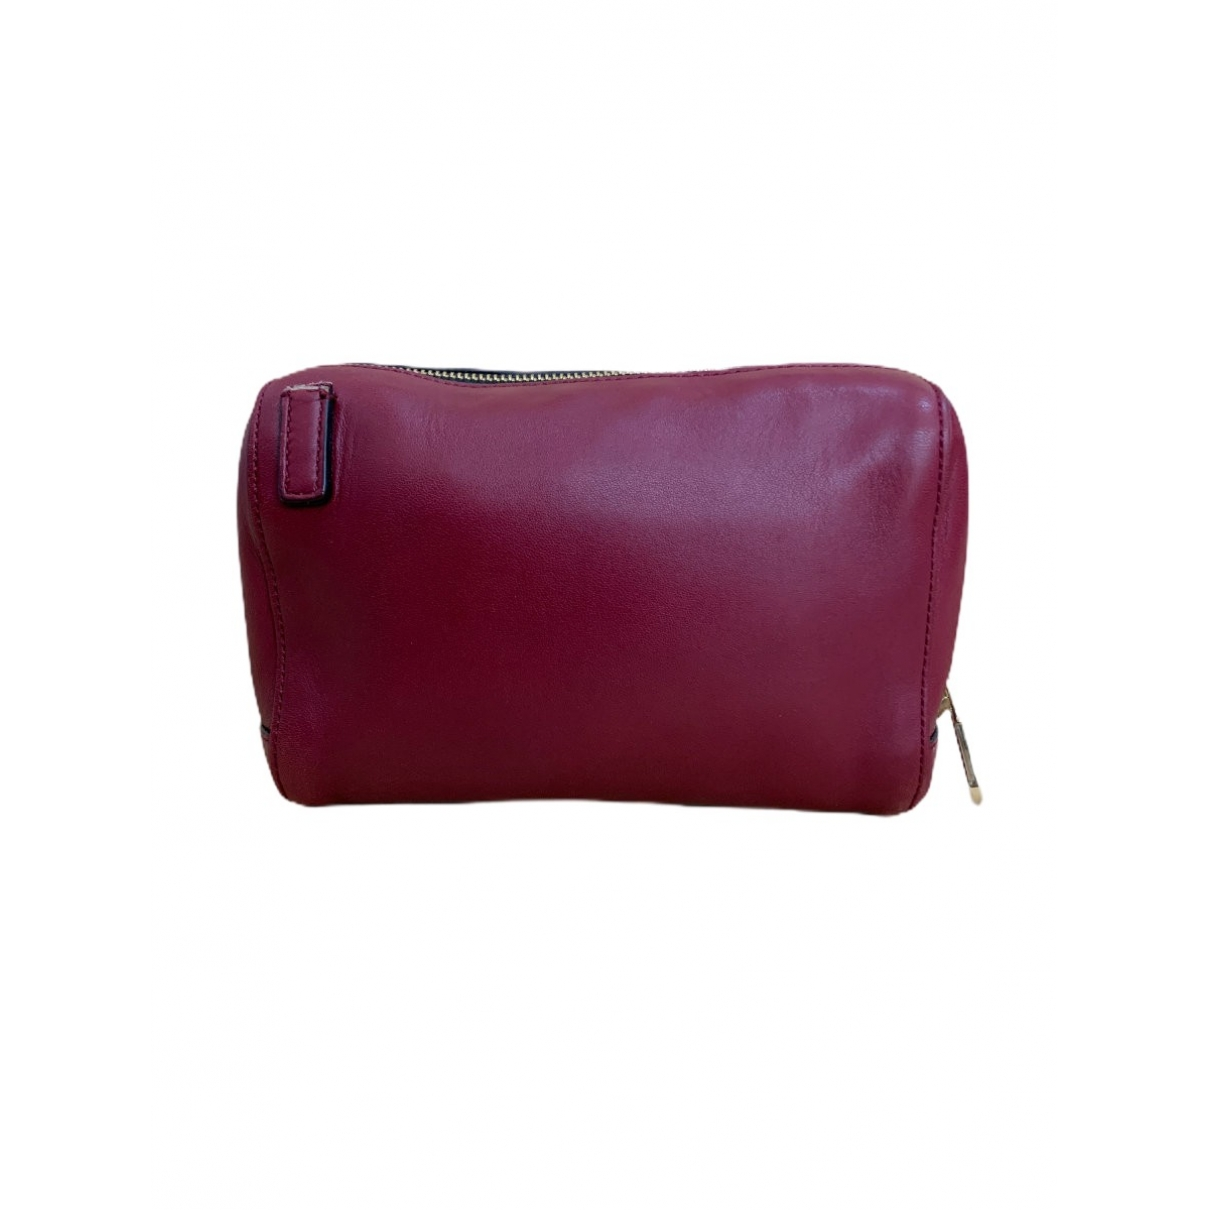 Chloe \N Clutch in  Bordeauxrot Leder